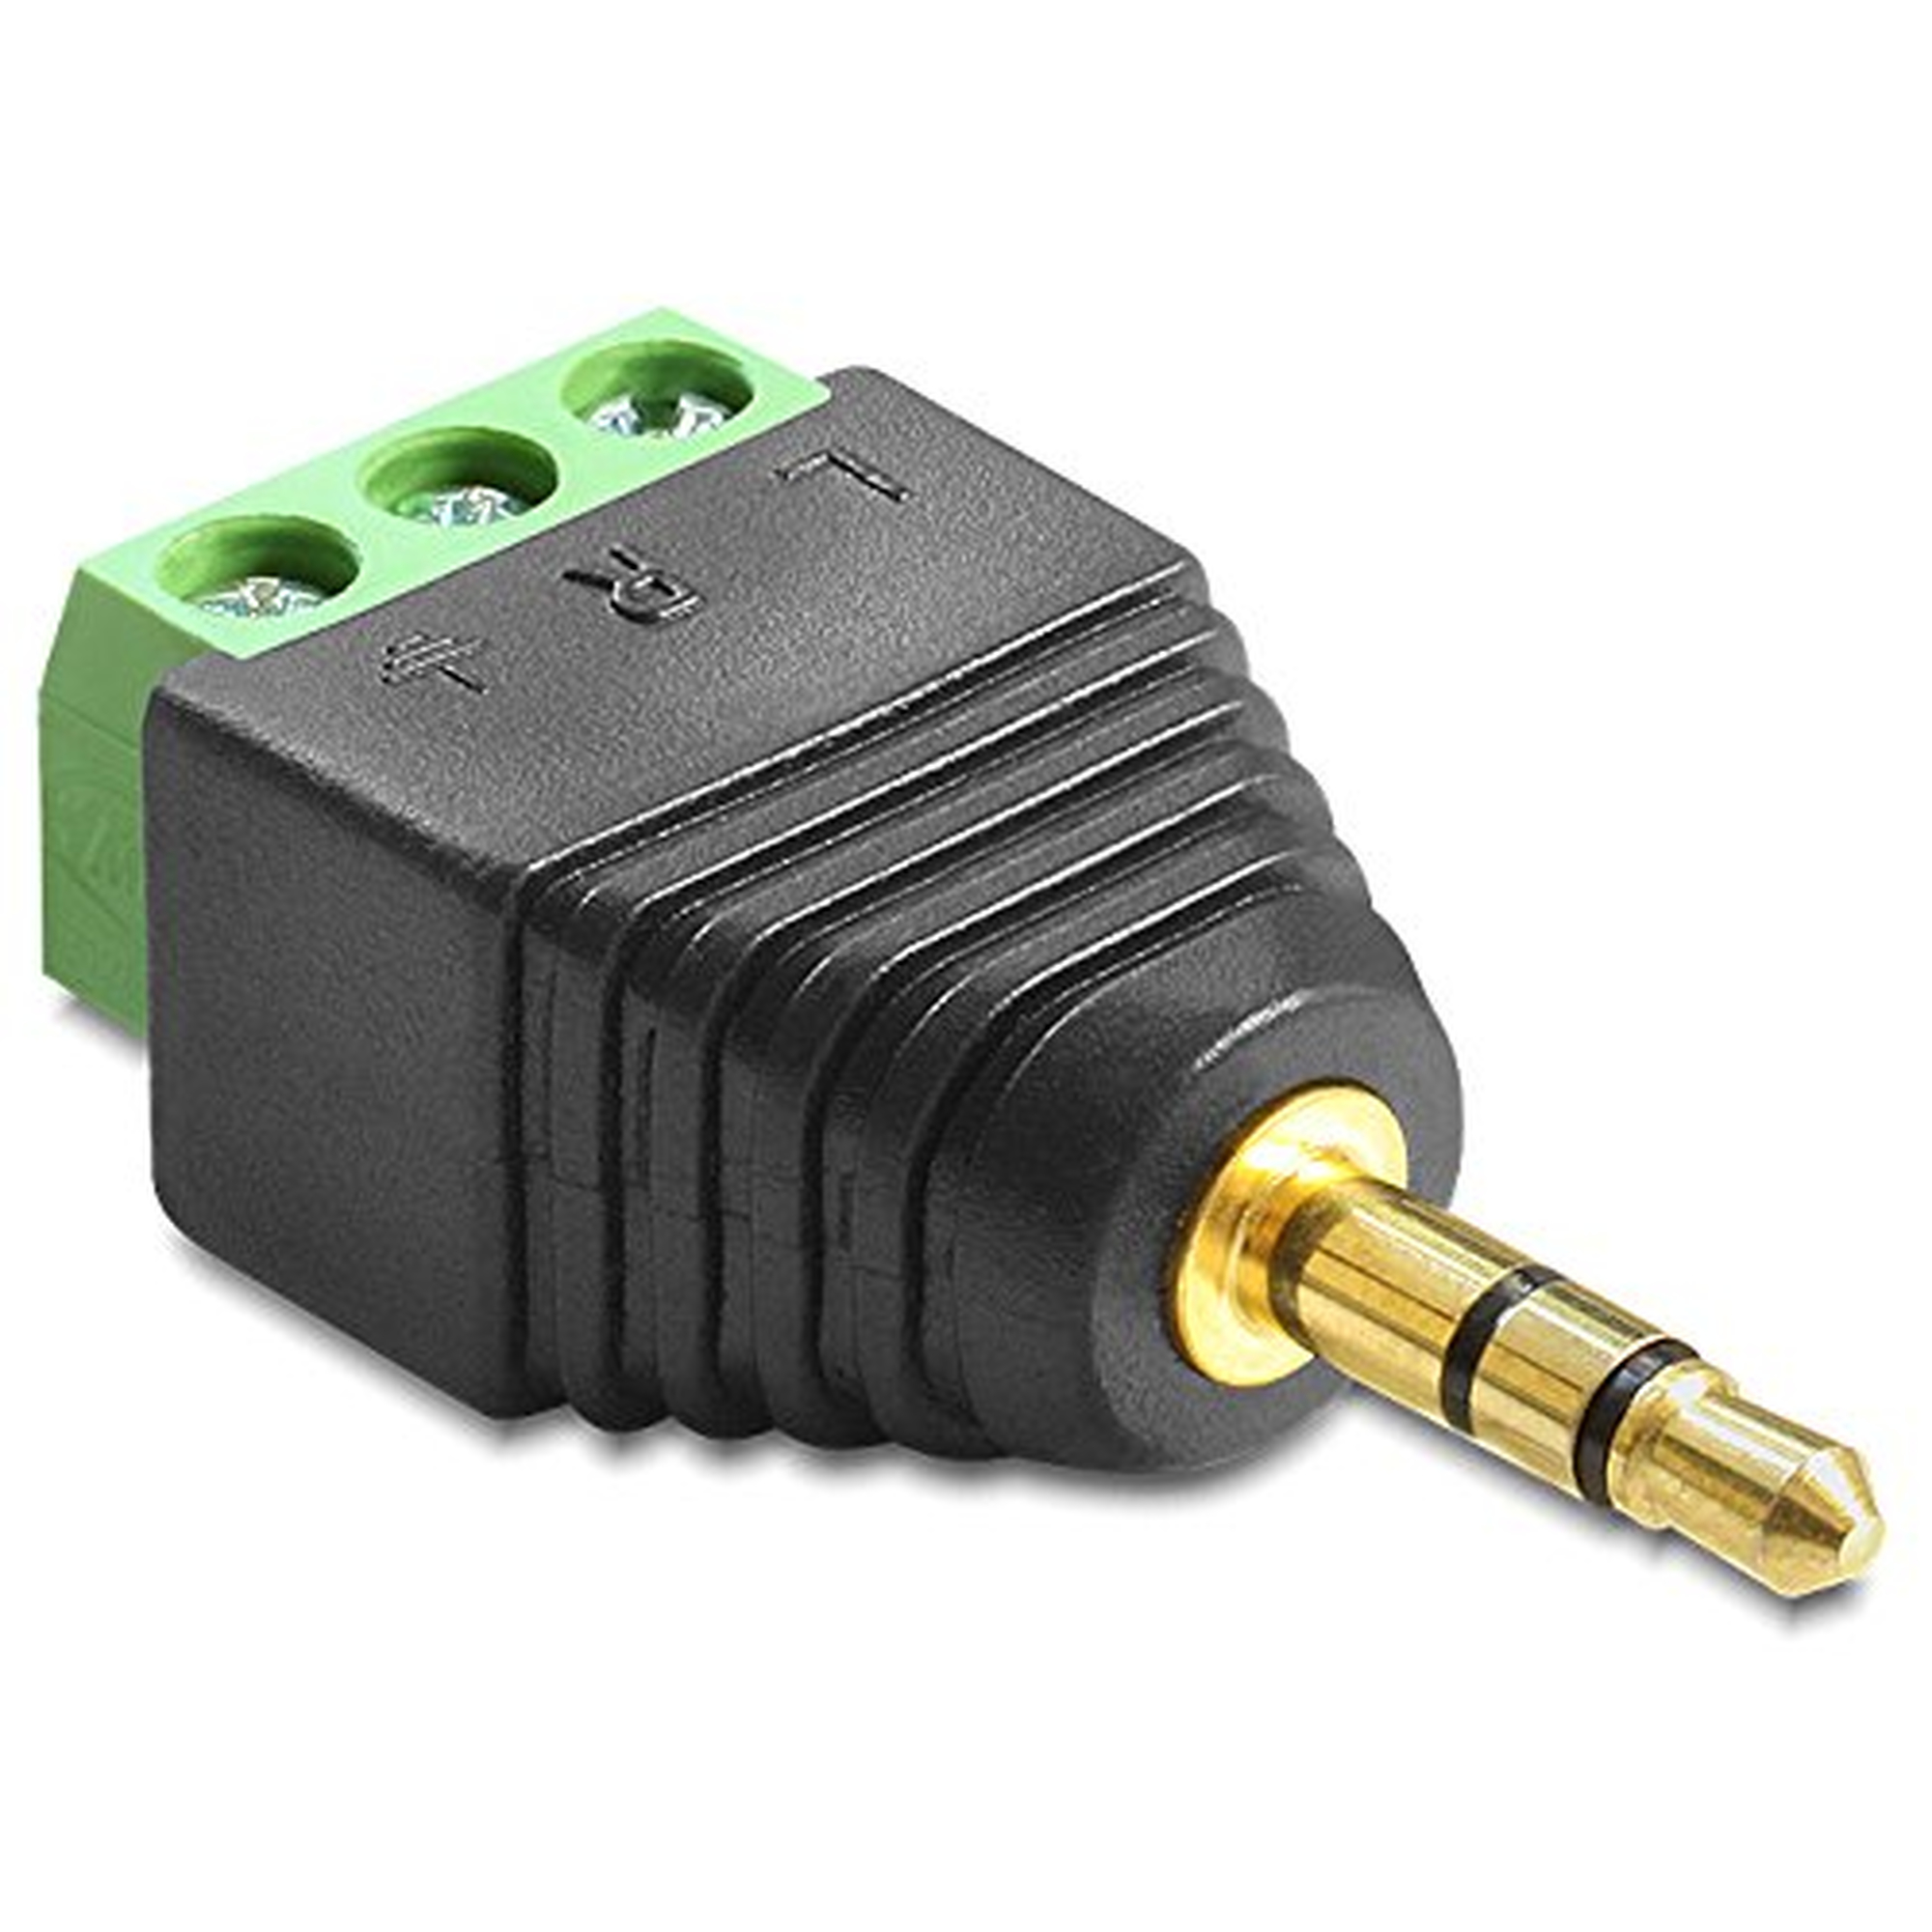 DeLOCK Adapter Klinke Stecker 3,5 mm > Terminalblock 3 Pin